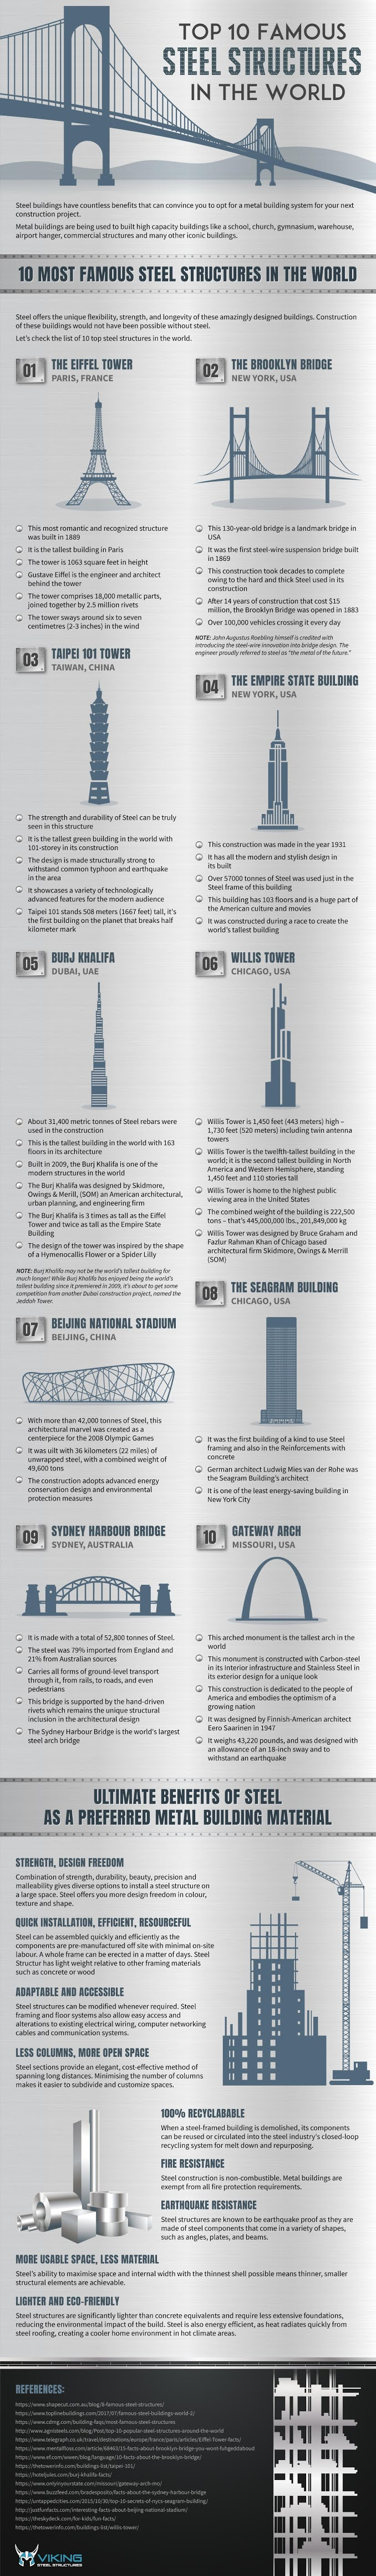 The 10 Most Famous Steel Structures In The World (Infographic)